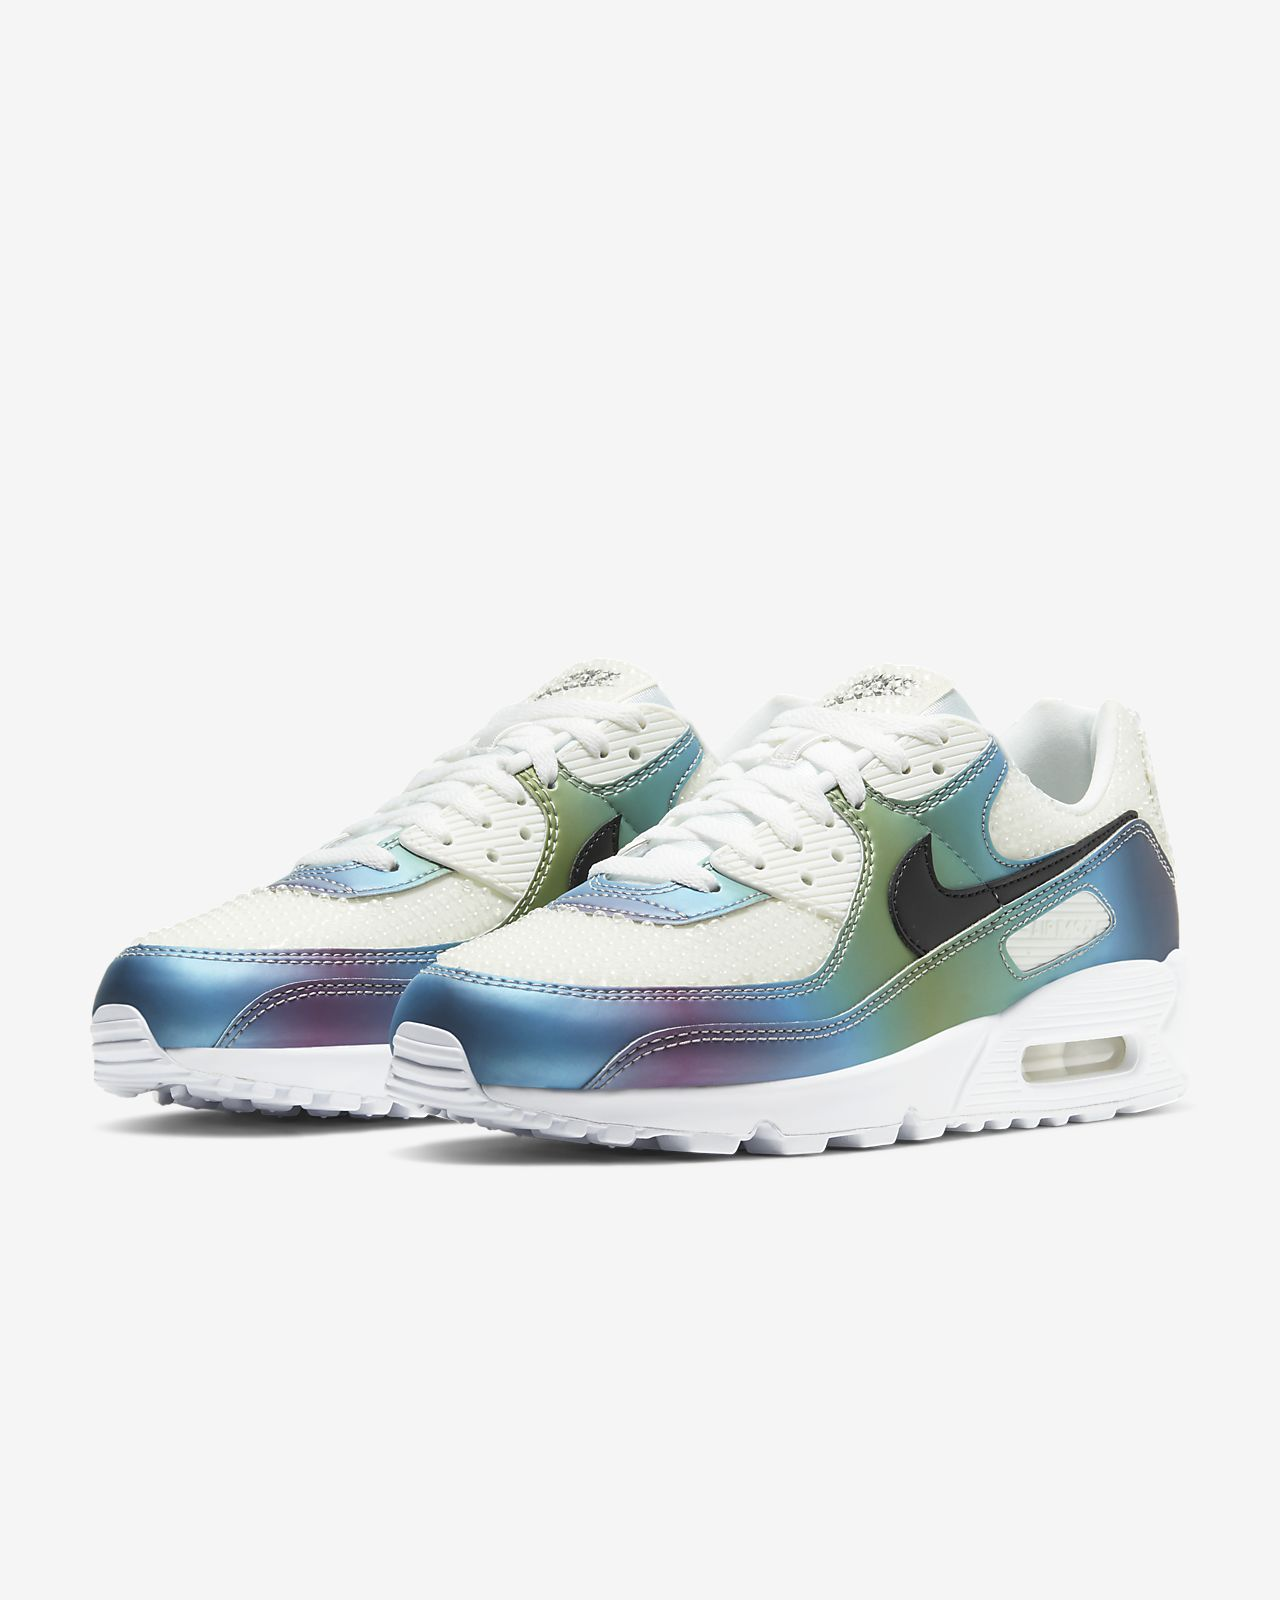 nike air max 90 trainers off 62% - www